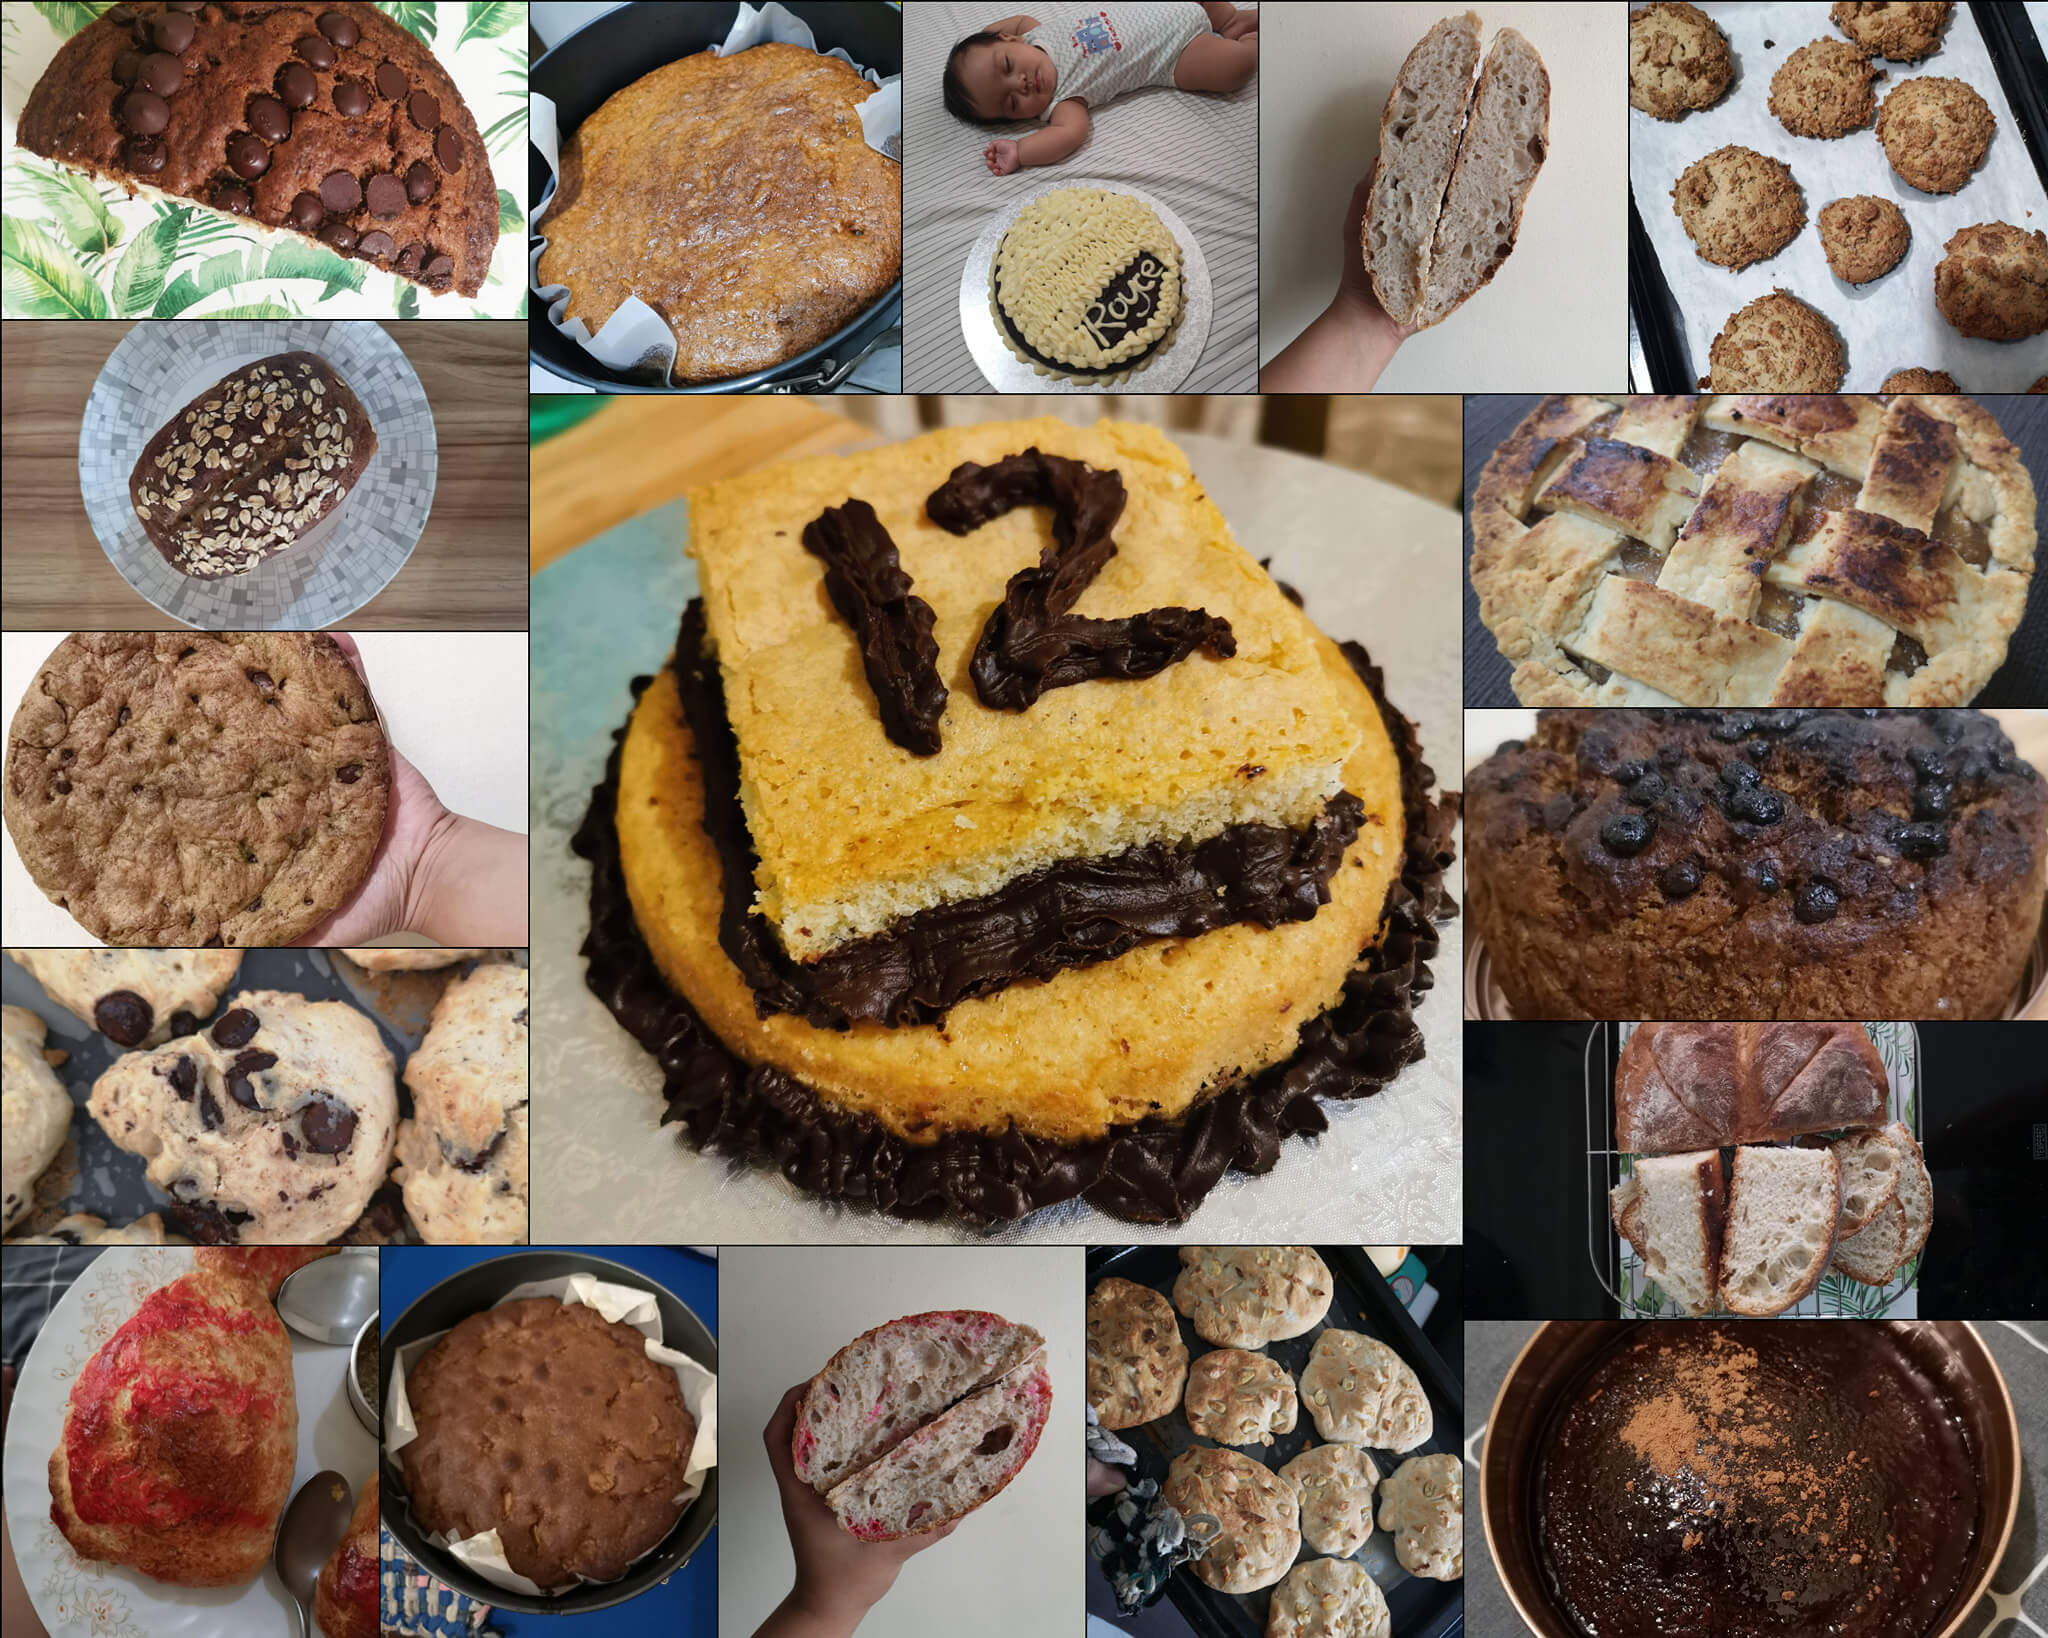 collage of 17 baked goods